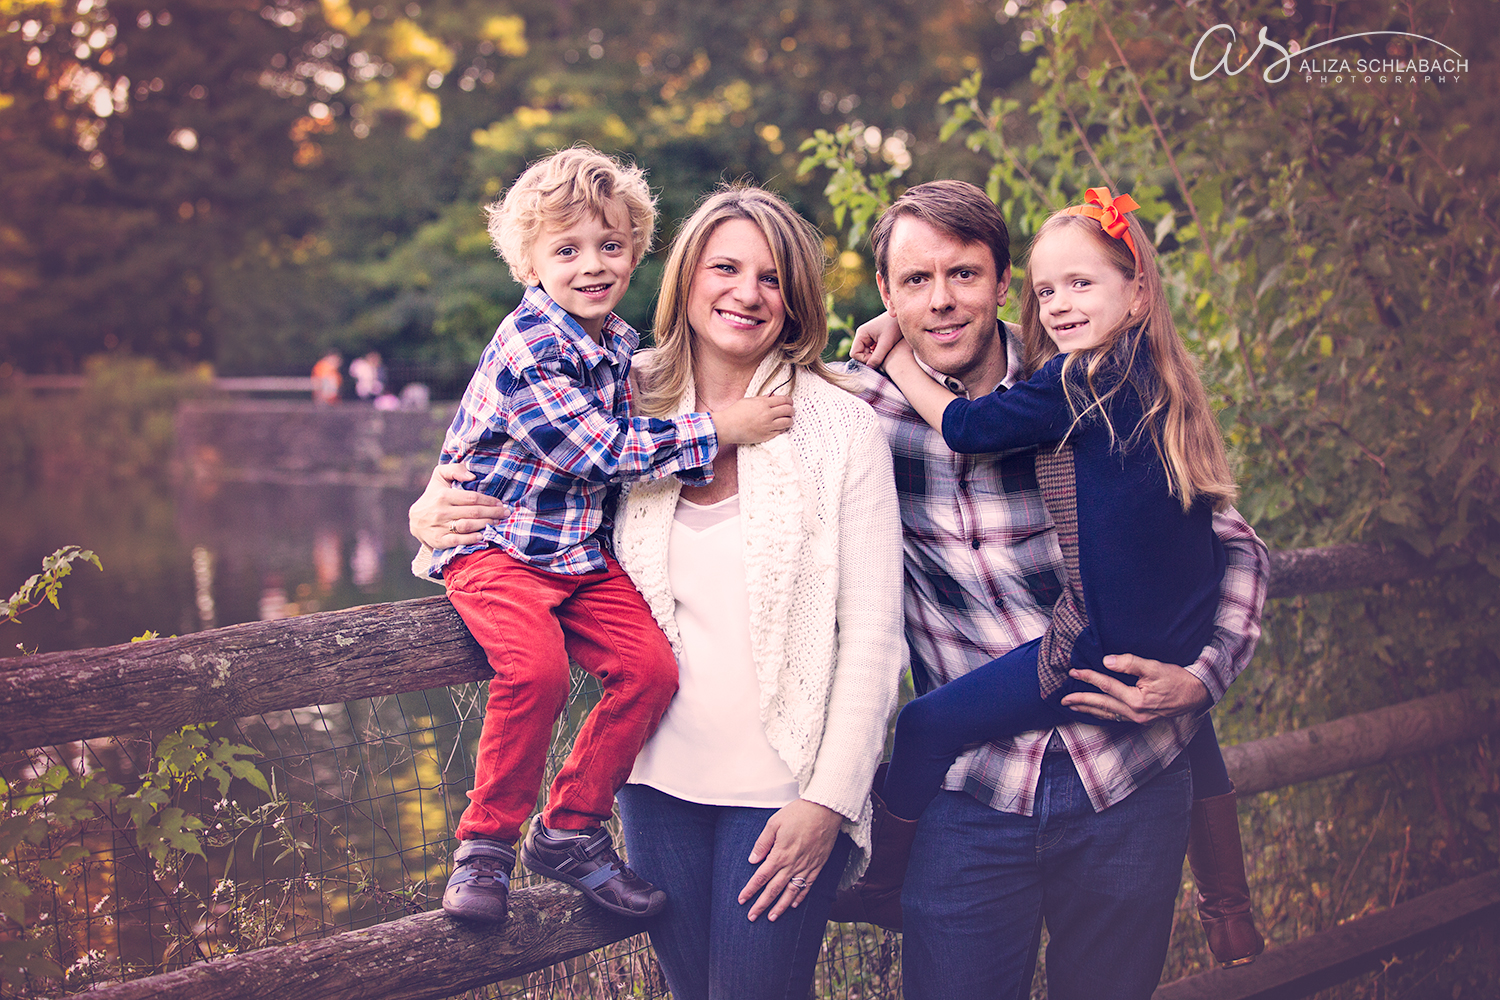 Photo of a family of 4 on the fence near a duck pond